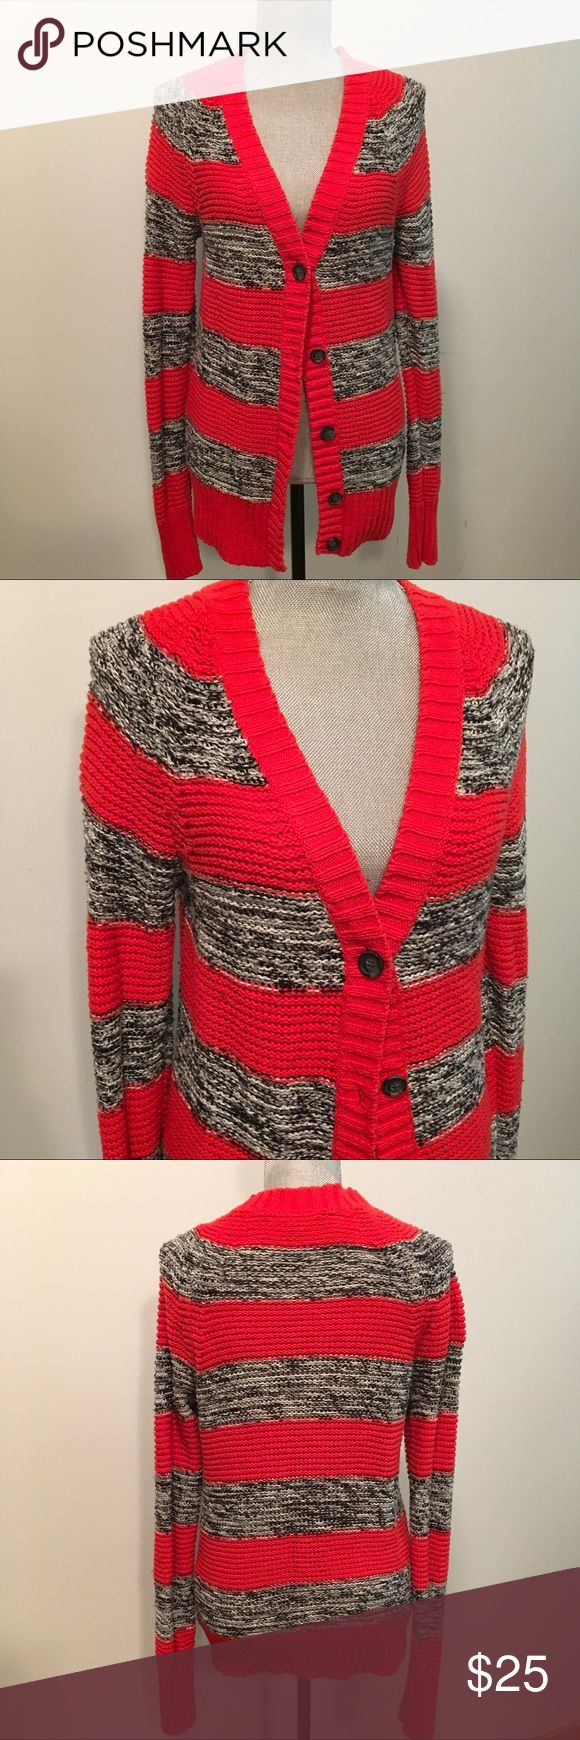 Hive and Honey Knit Stripped Cardigan Knit striped sweater in good used condition. I also have the same sweater for sale in my closet in blue. Piperlime Sweaters Cardigans